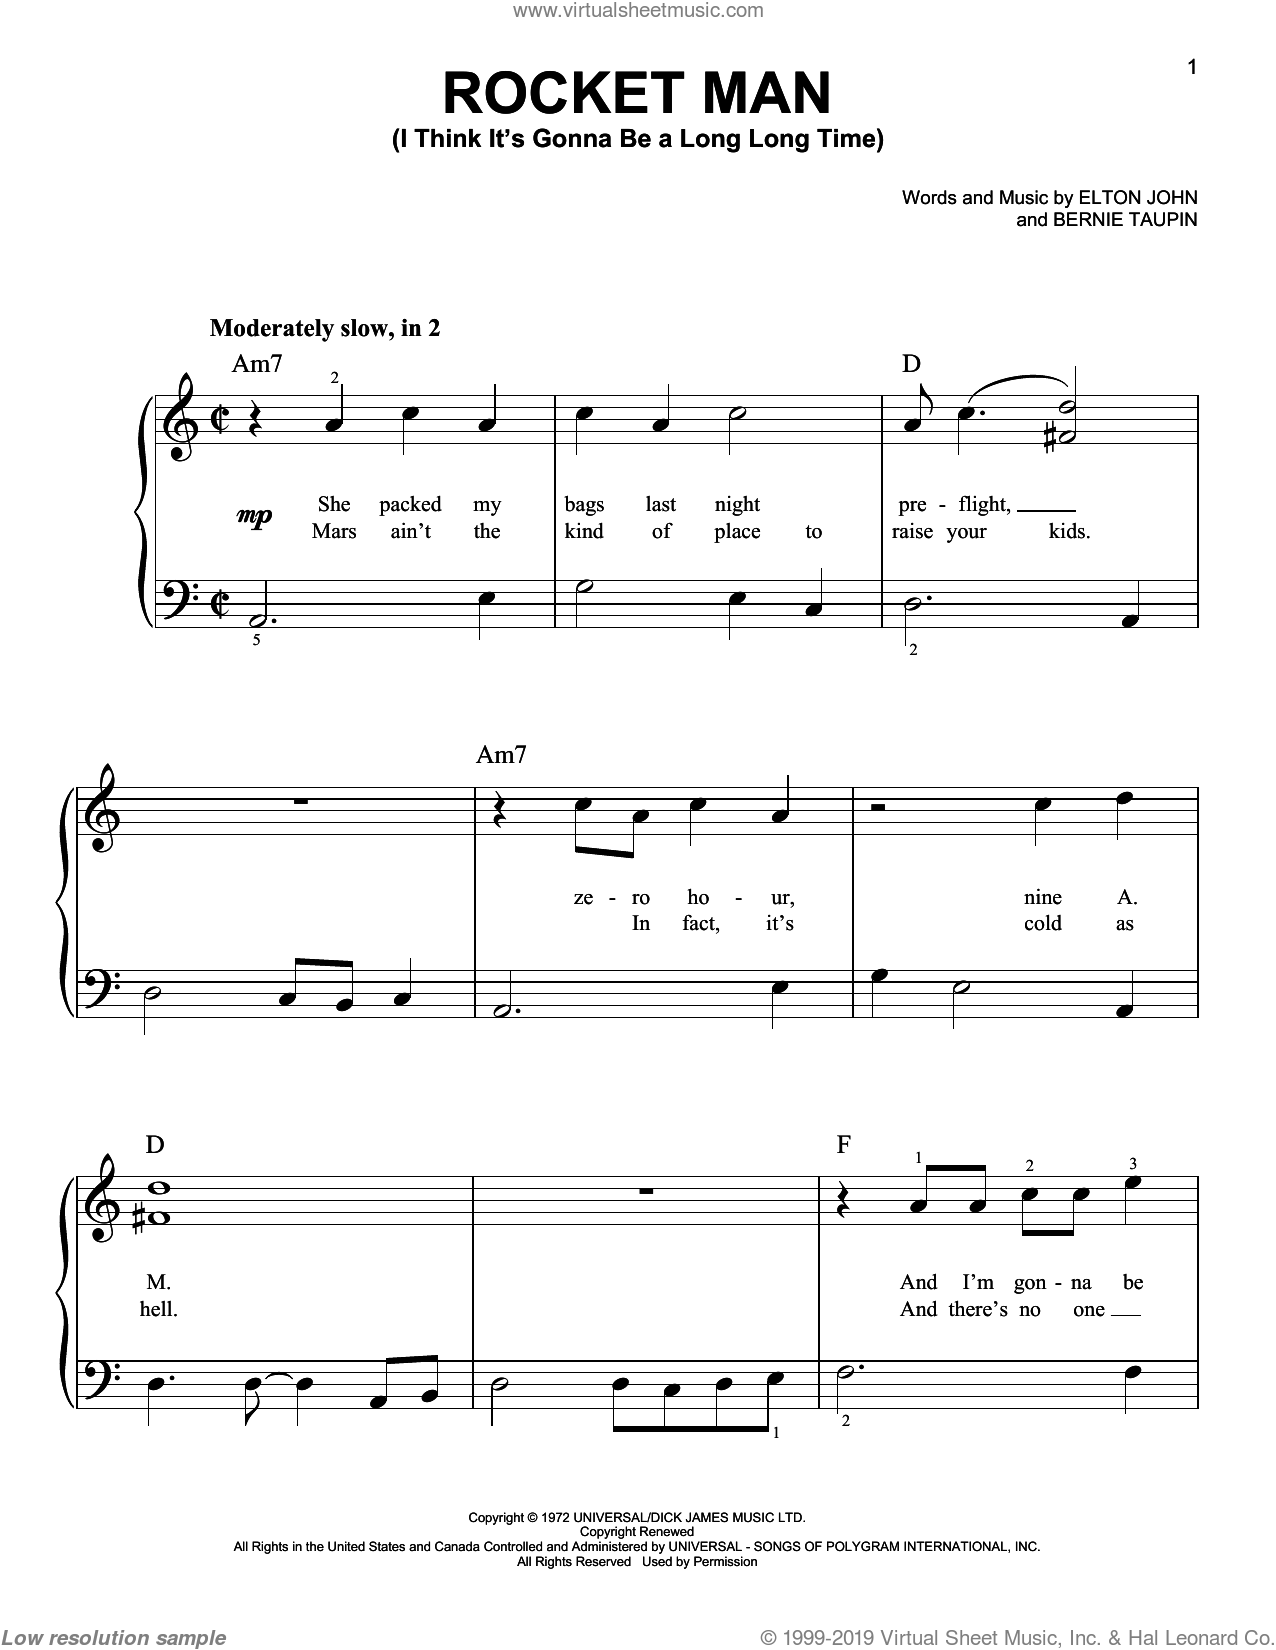 Rocket Man (I Think It's Gonna Be A Long Long Time) sheet music for piano solo by Bernie Taupin and Elton John. Score Image Preview.